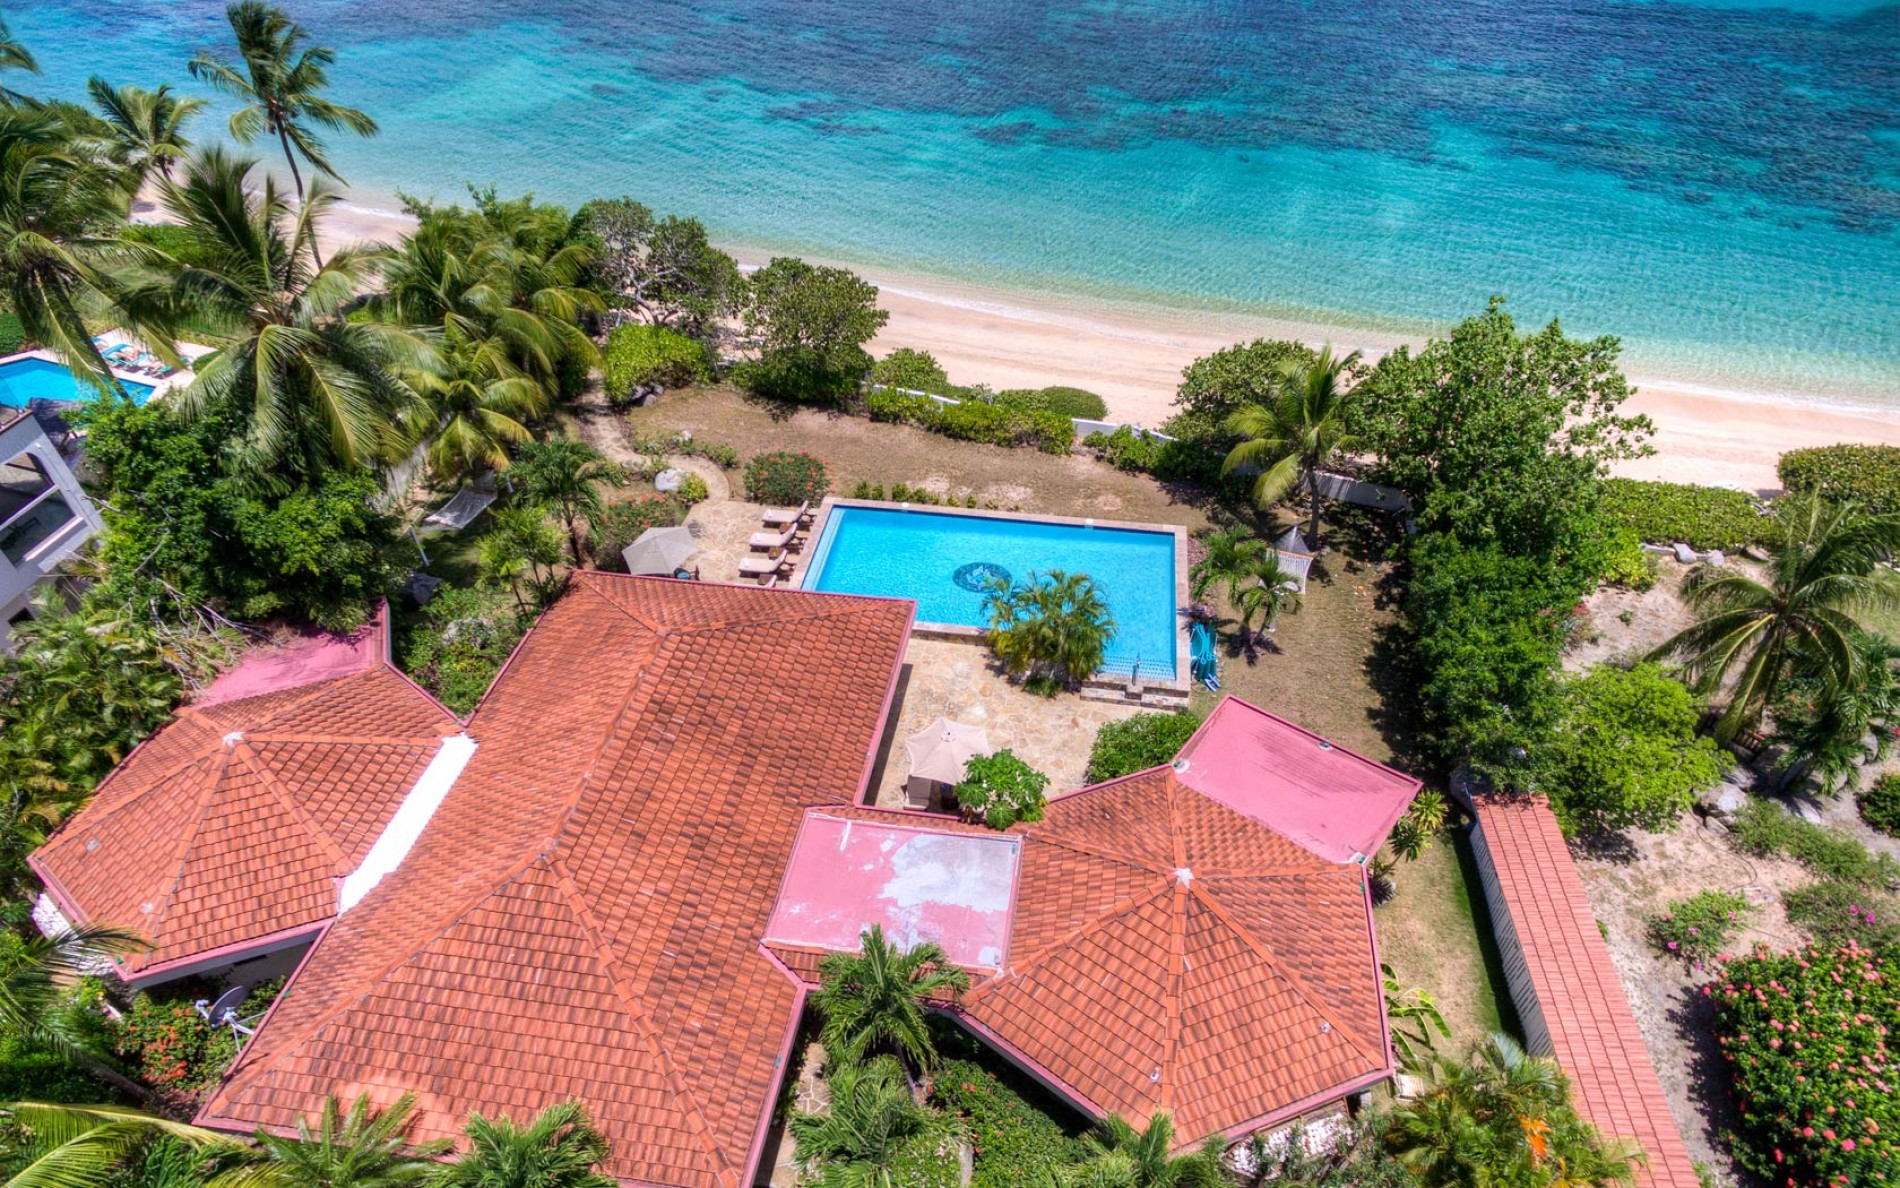 Christmas In July 2019 Virgin Gorda.Sea Fans 4 Bedrooms Beachfront